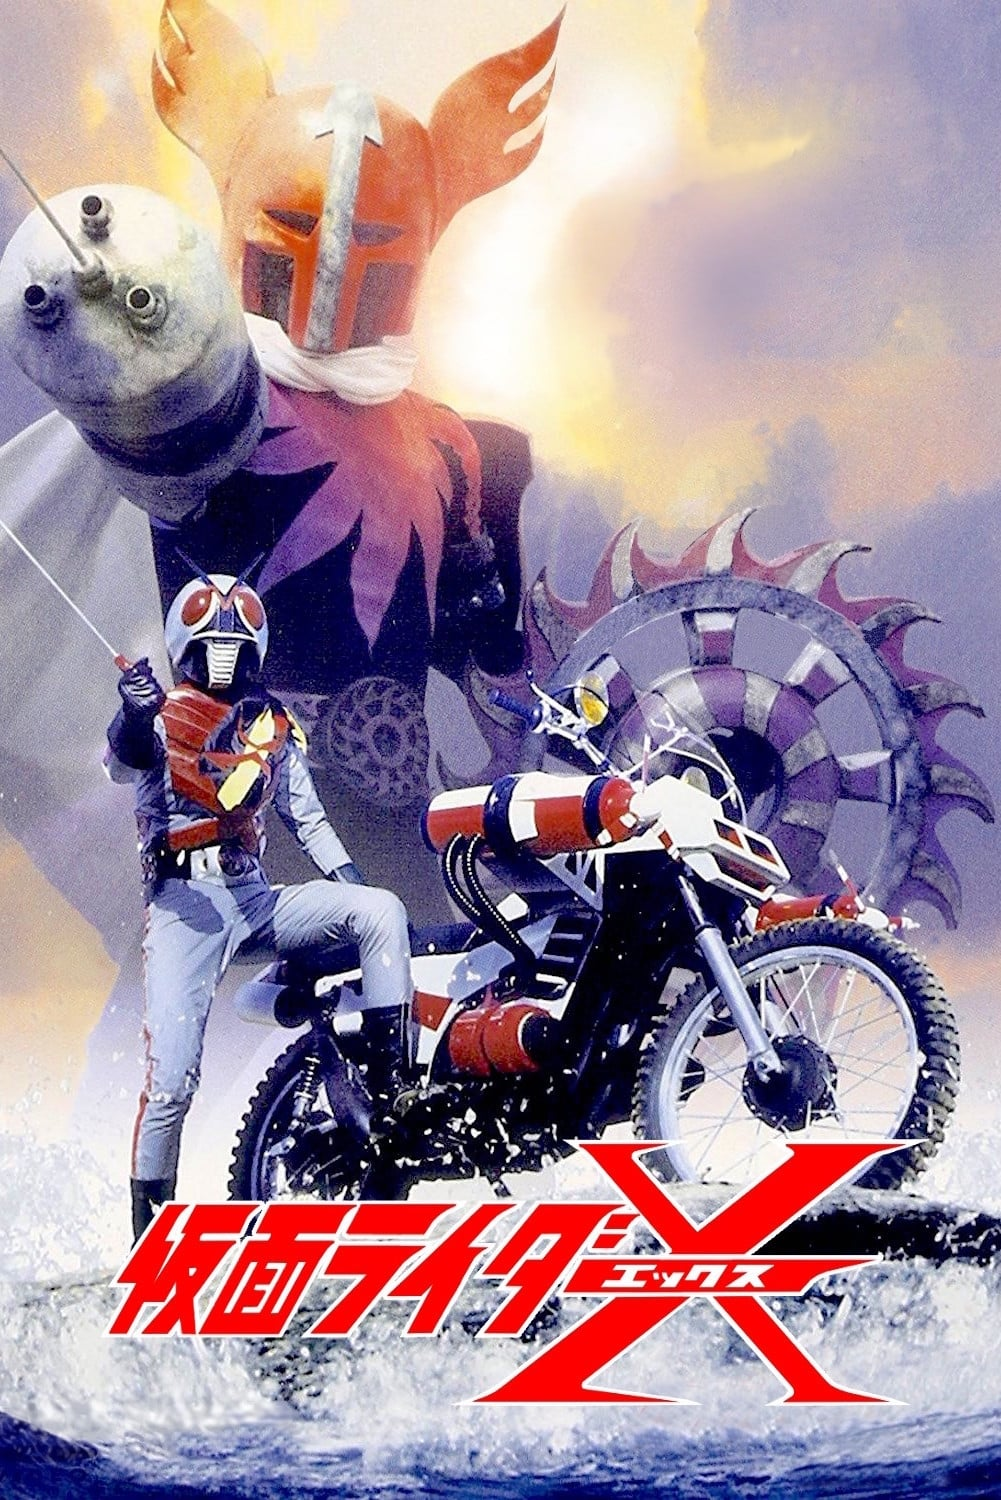 Kamen Rider - Season 21 Episode 7 : Useless Husband, A Trap, Big Win Season 3